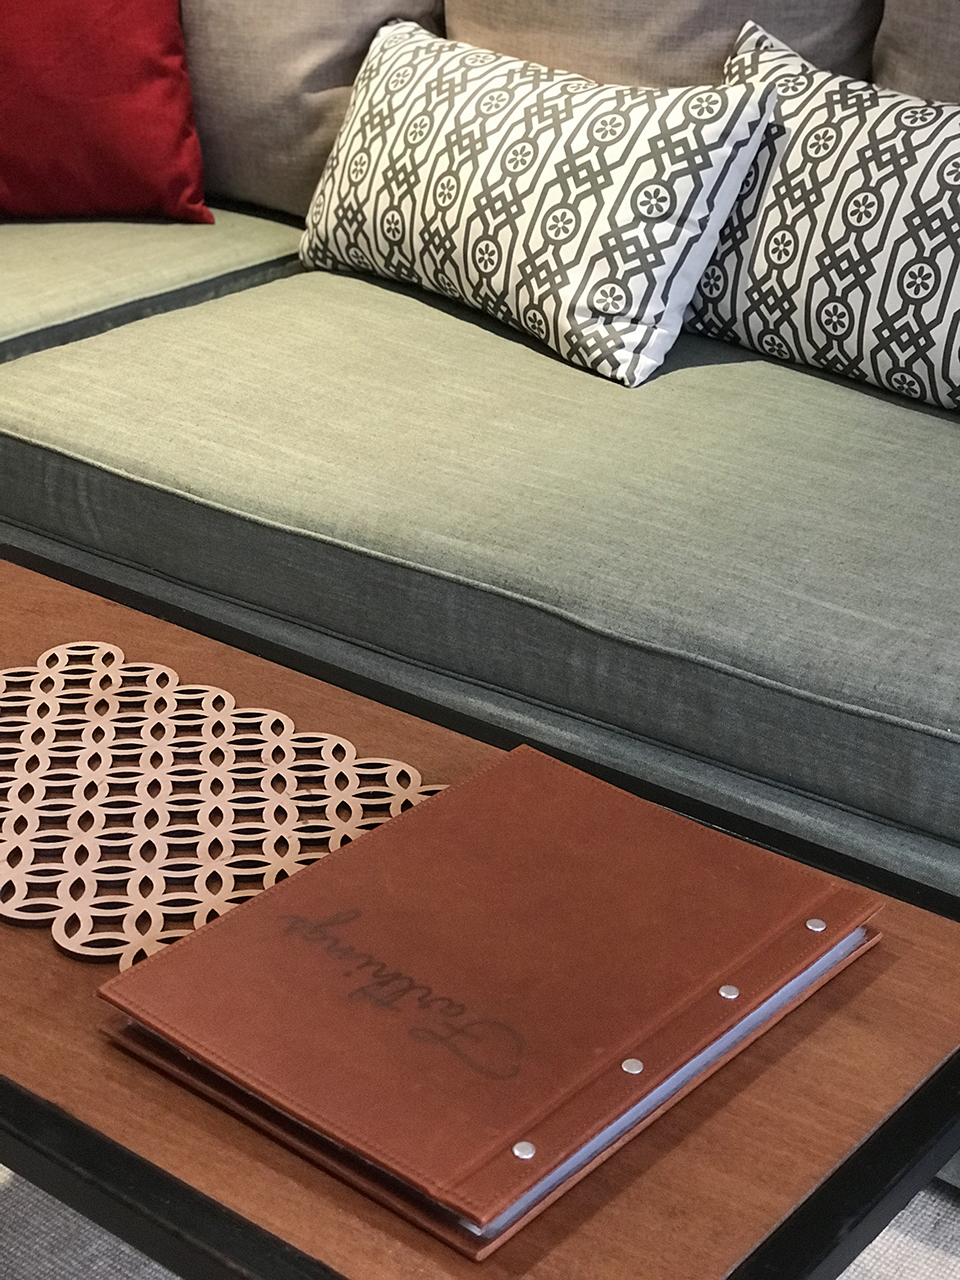 Information folder on coffee table